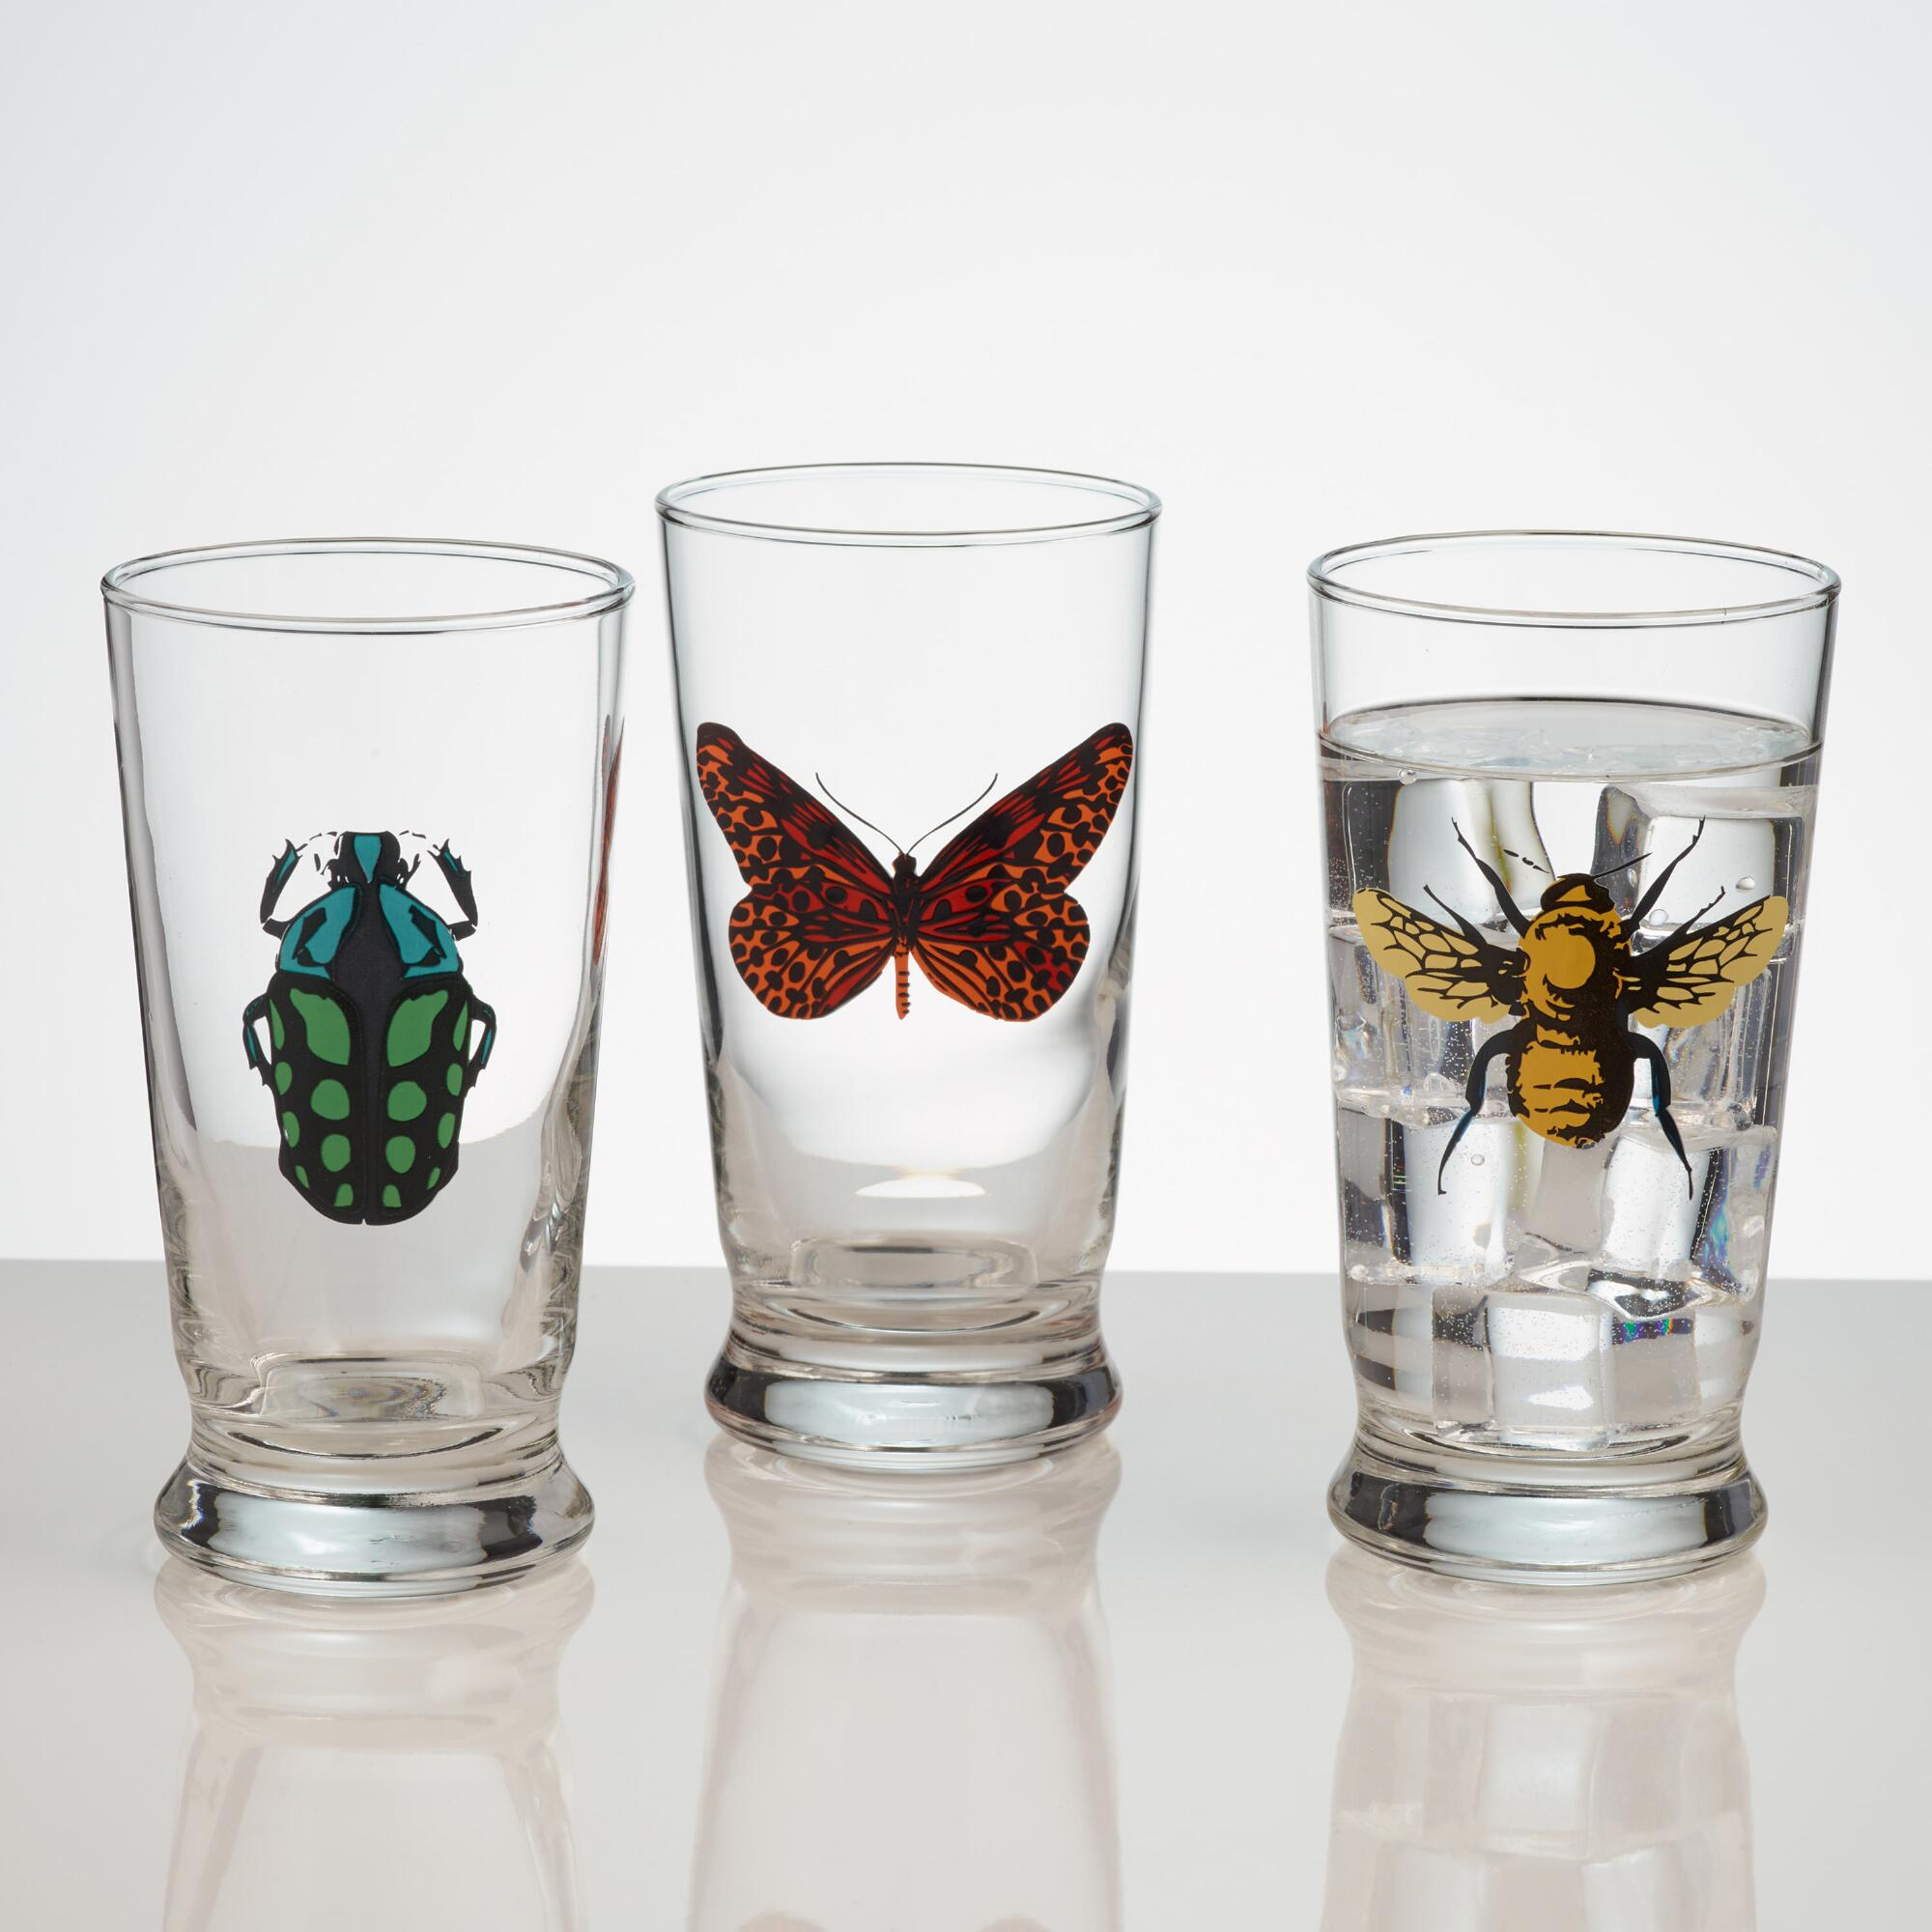 World Market Insect Glass Tumblers, Set of 3